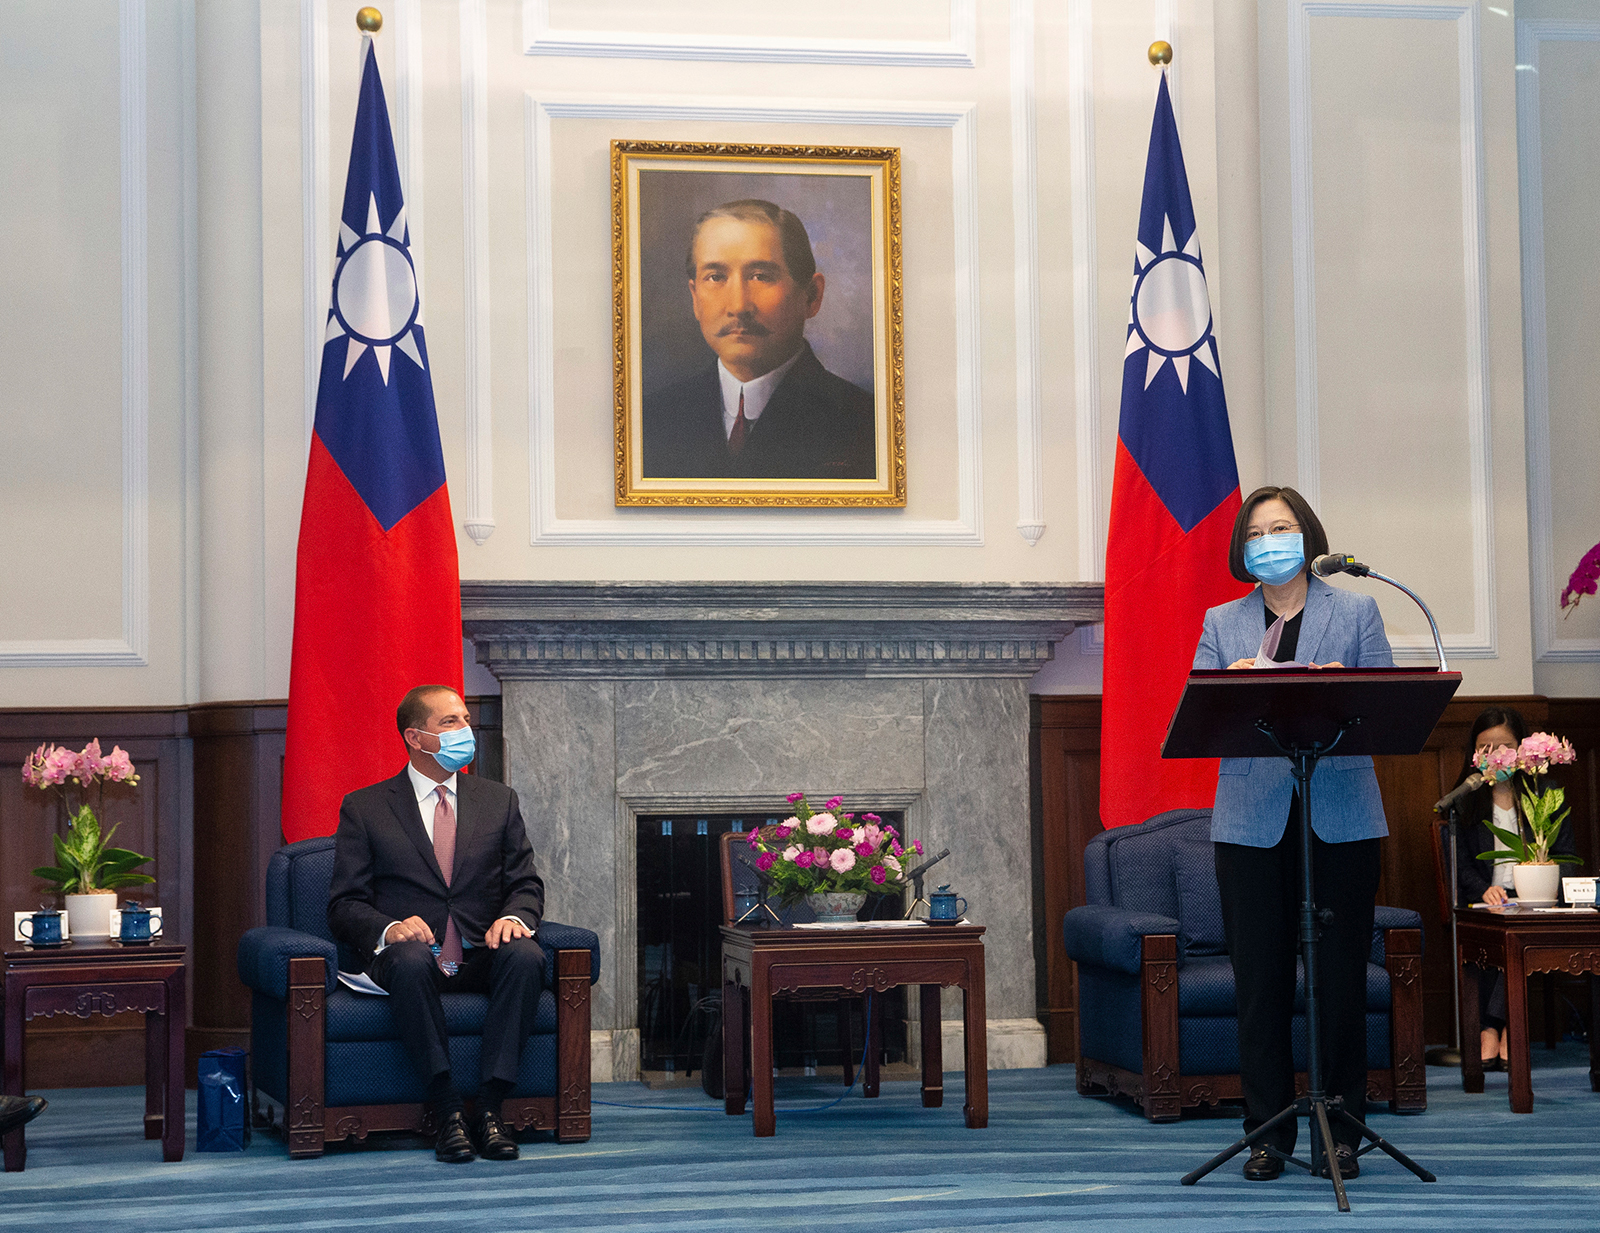 US Health and Human Services Secretary Alex Azar (left)l listens as Taiwan's President Tsai Ing-wen speaks during a meeting in Taipei, Taiwan on August 10.